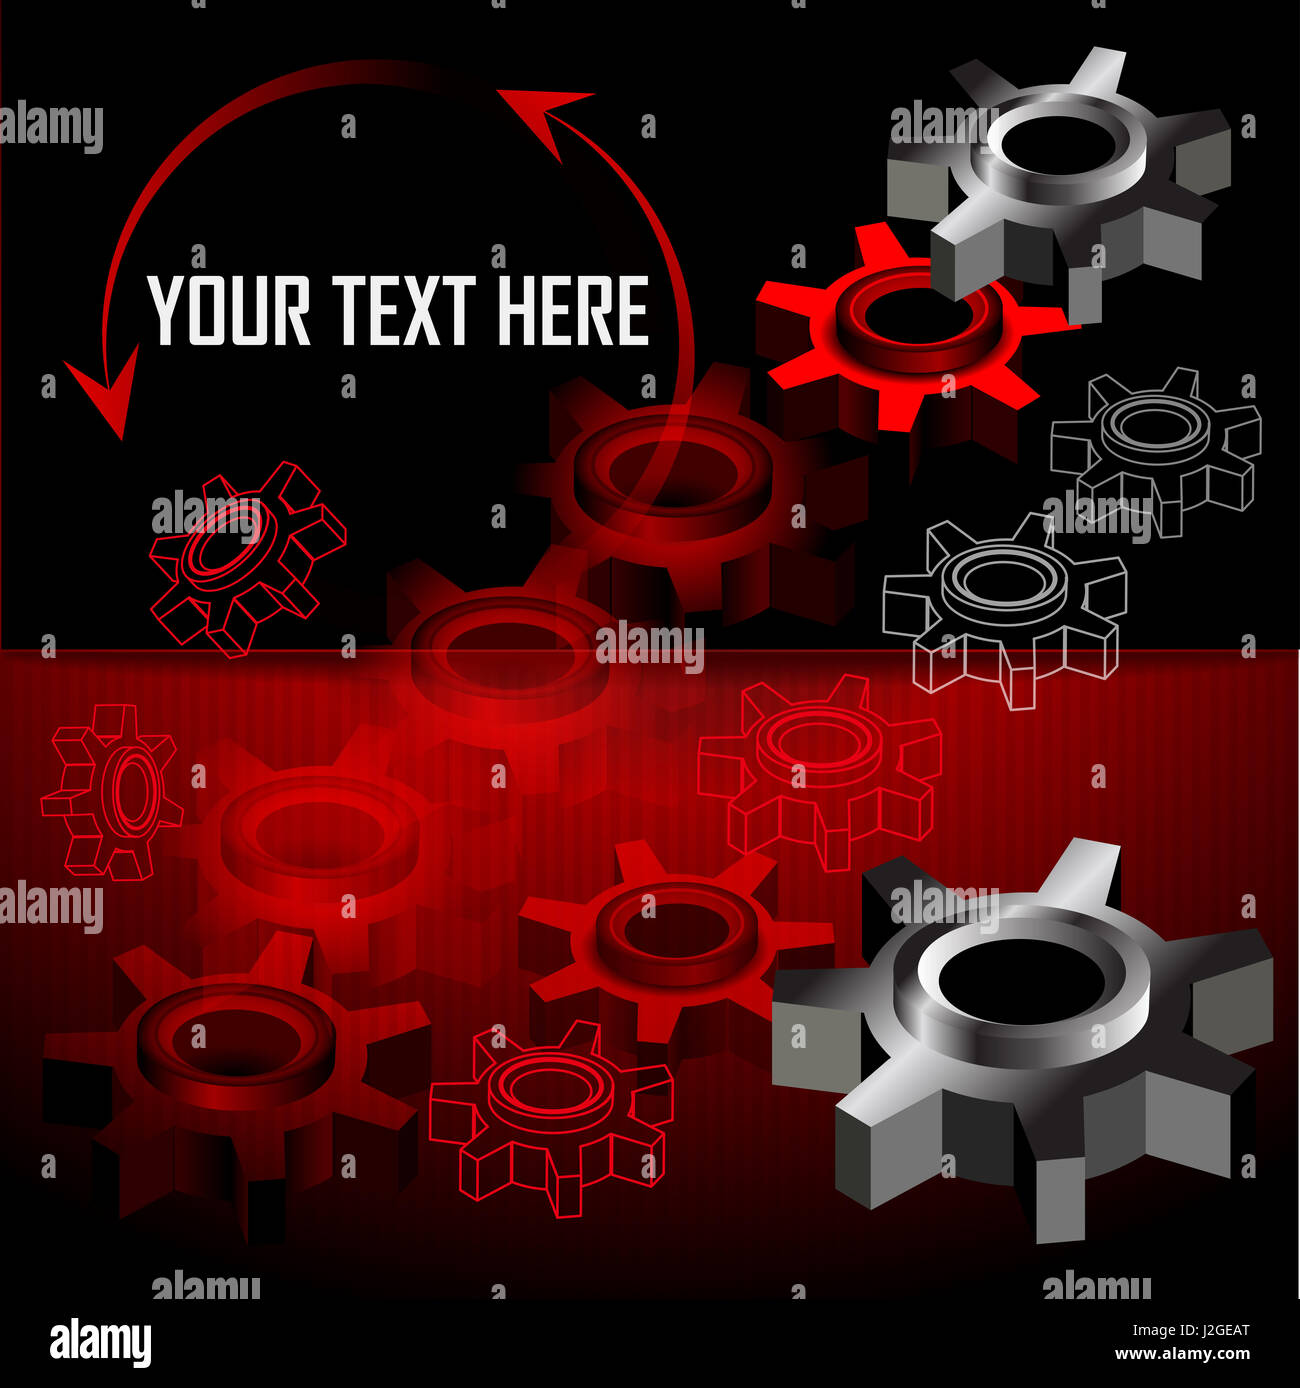 Industrial background with gear wheel. Place for text. Vector illustration - Stock Image